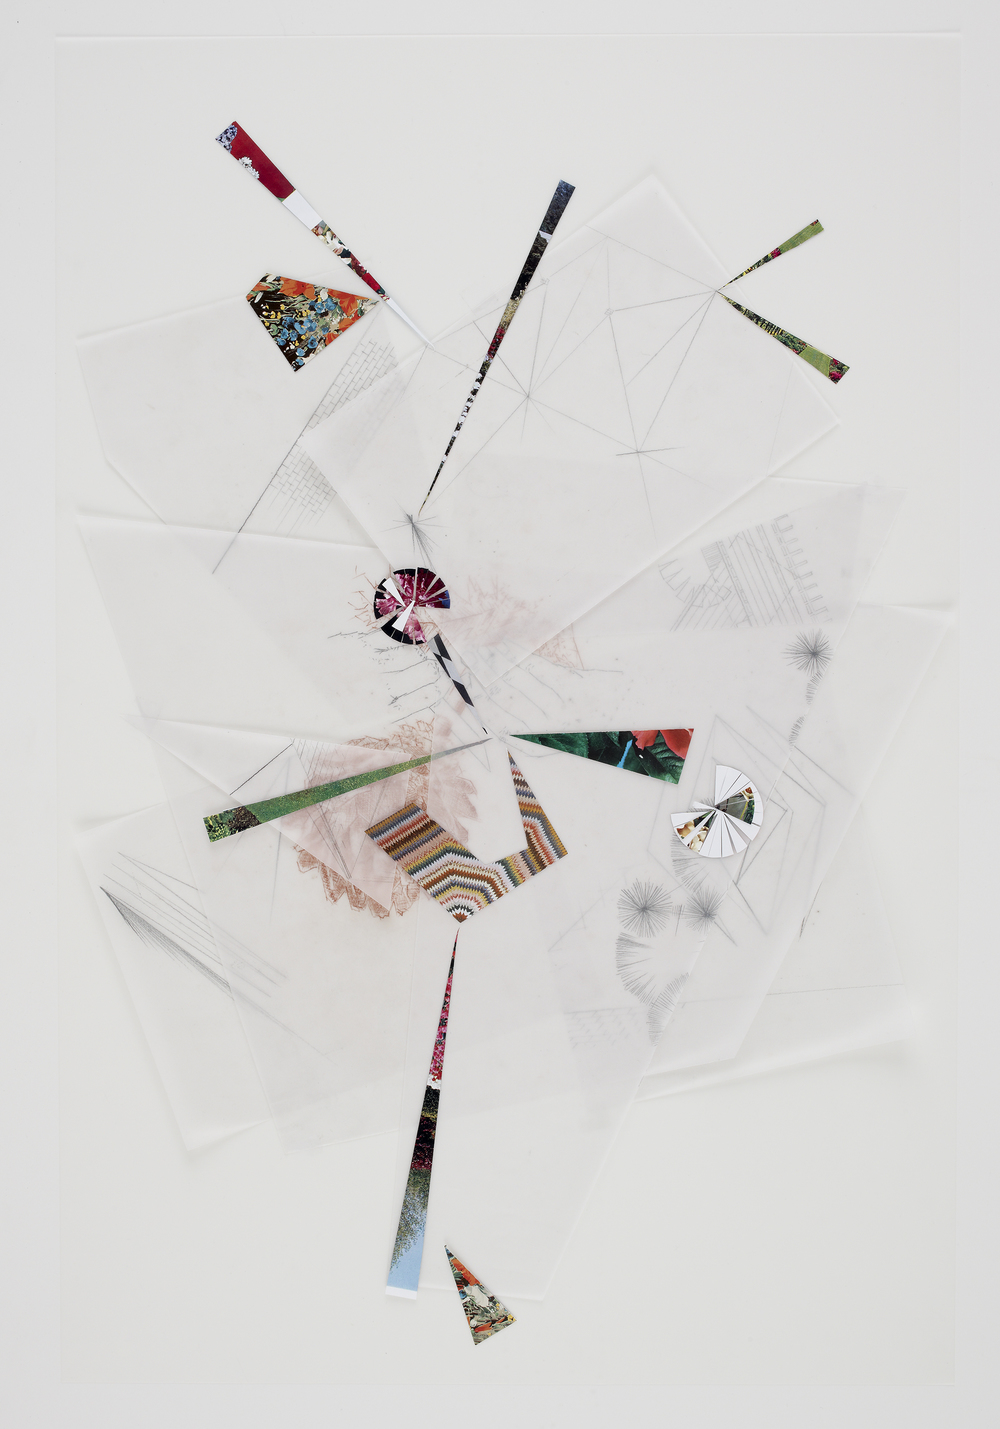 Untitled, 2010, collage, pencil and sanguine on tracing paper, 34 x 22 inches/  86 x 56 cm